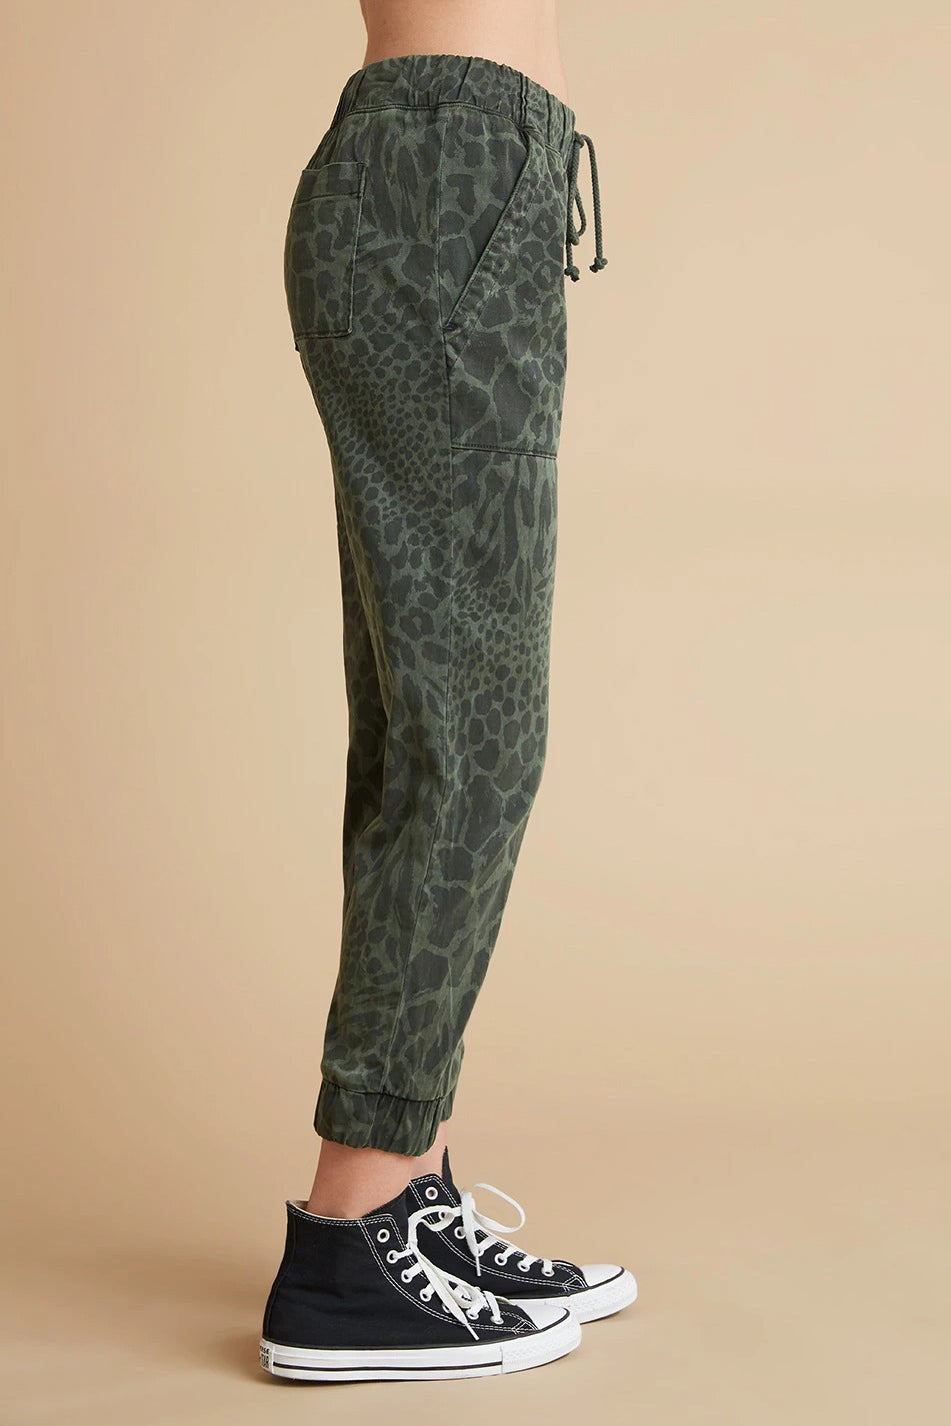 Print Pocket Jogger Pant in Ivy